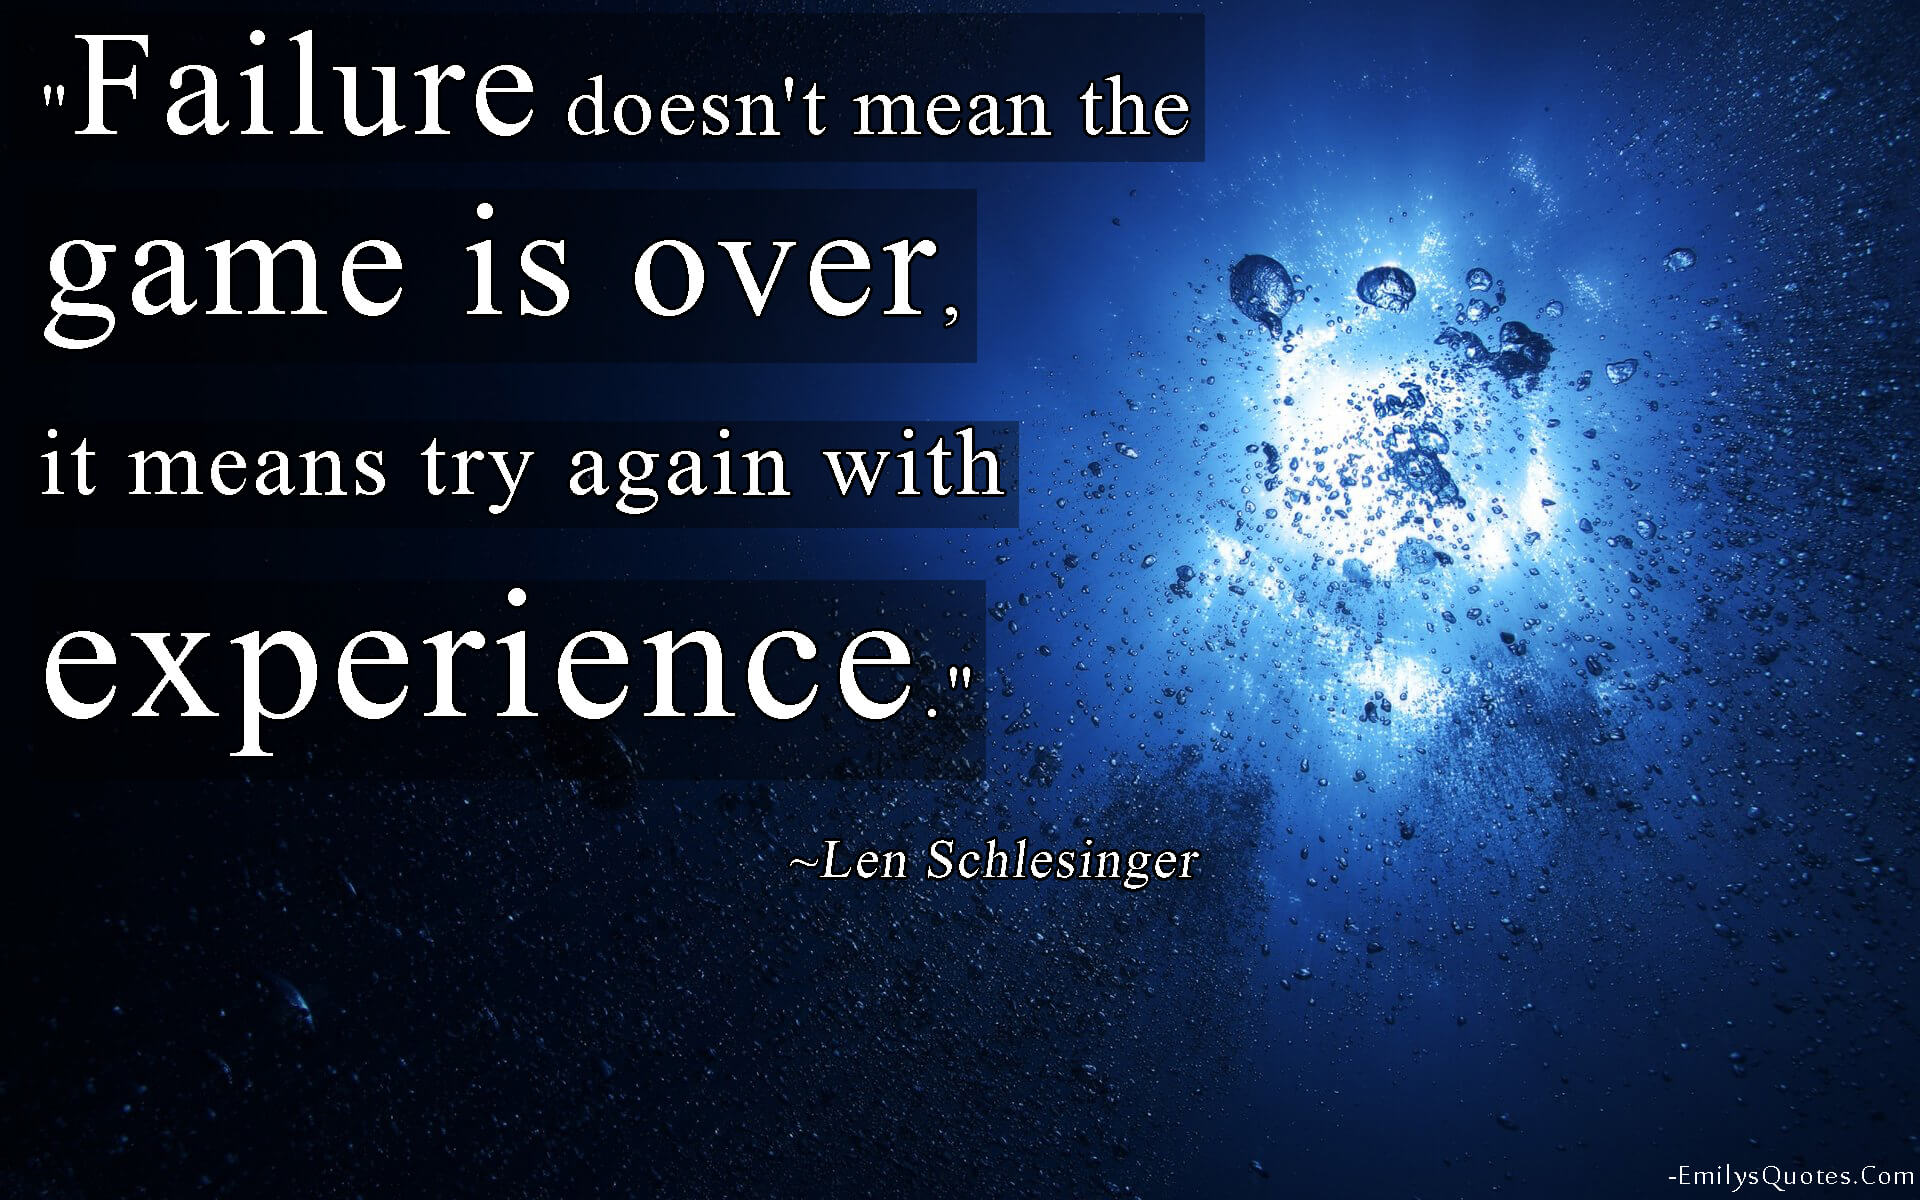 Spirit Science Quotes Wallpapers On Abject Failure Continued Tales Of A Tech